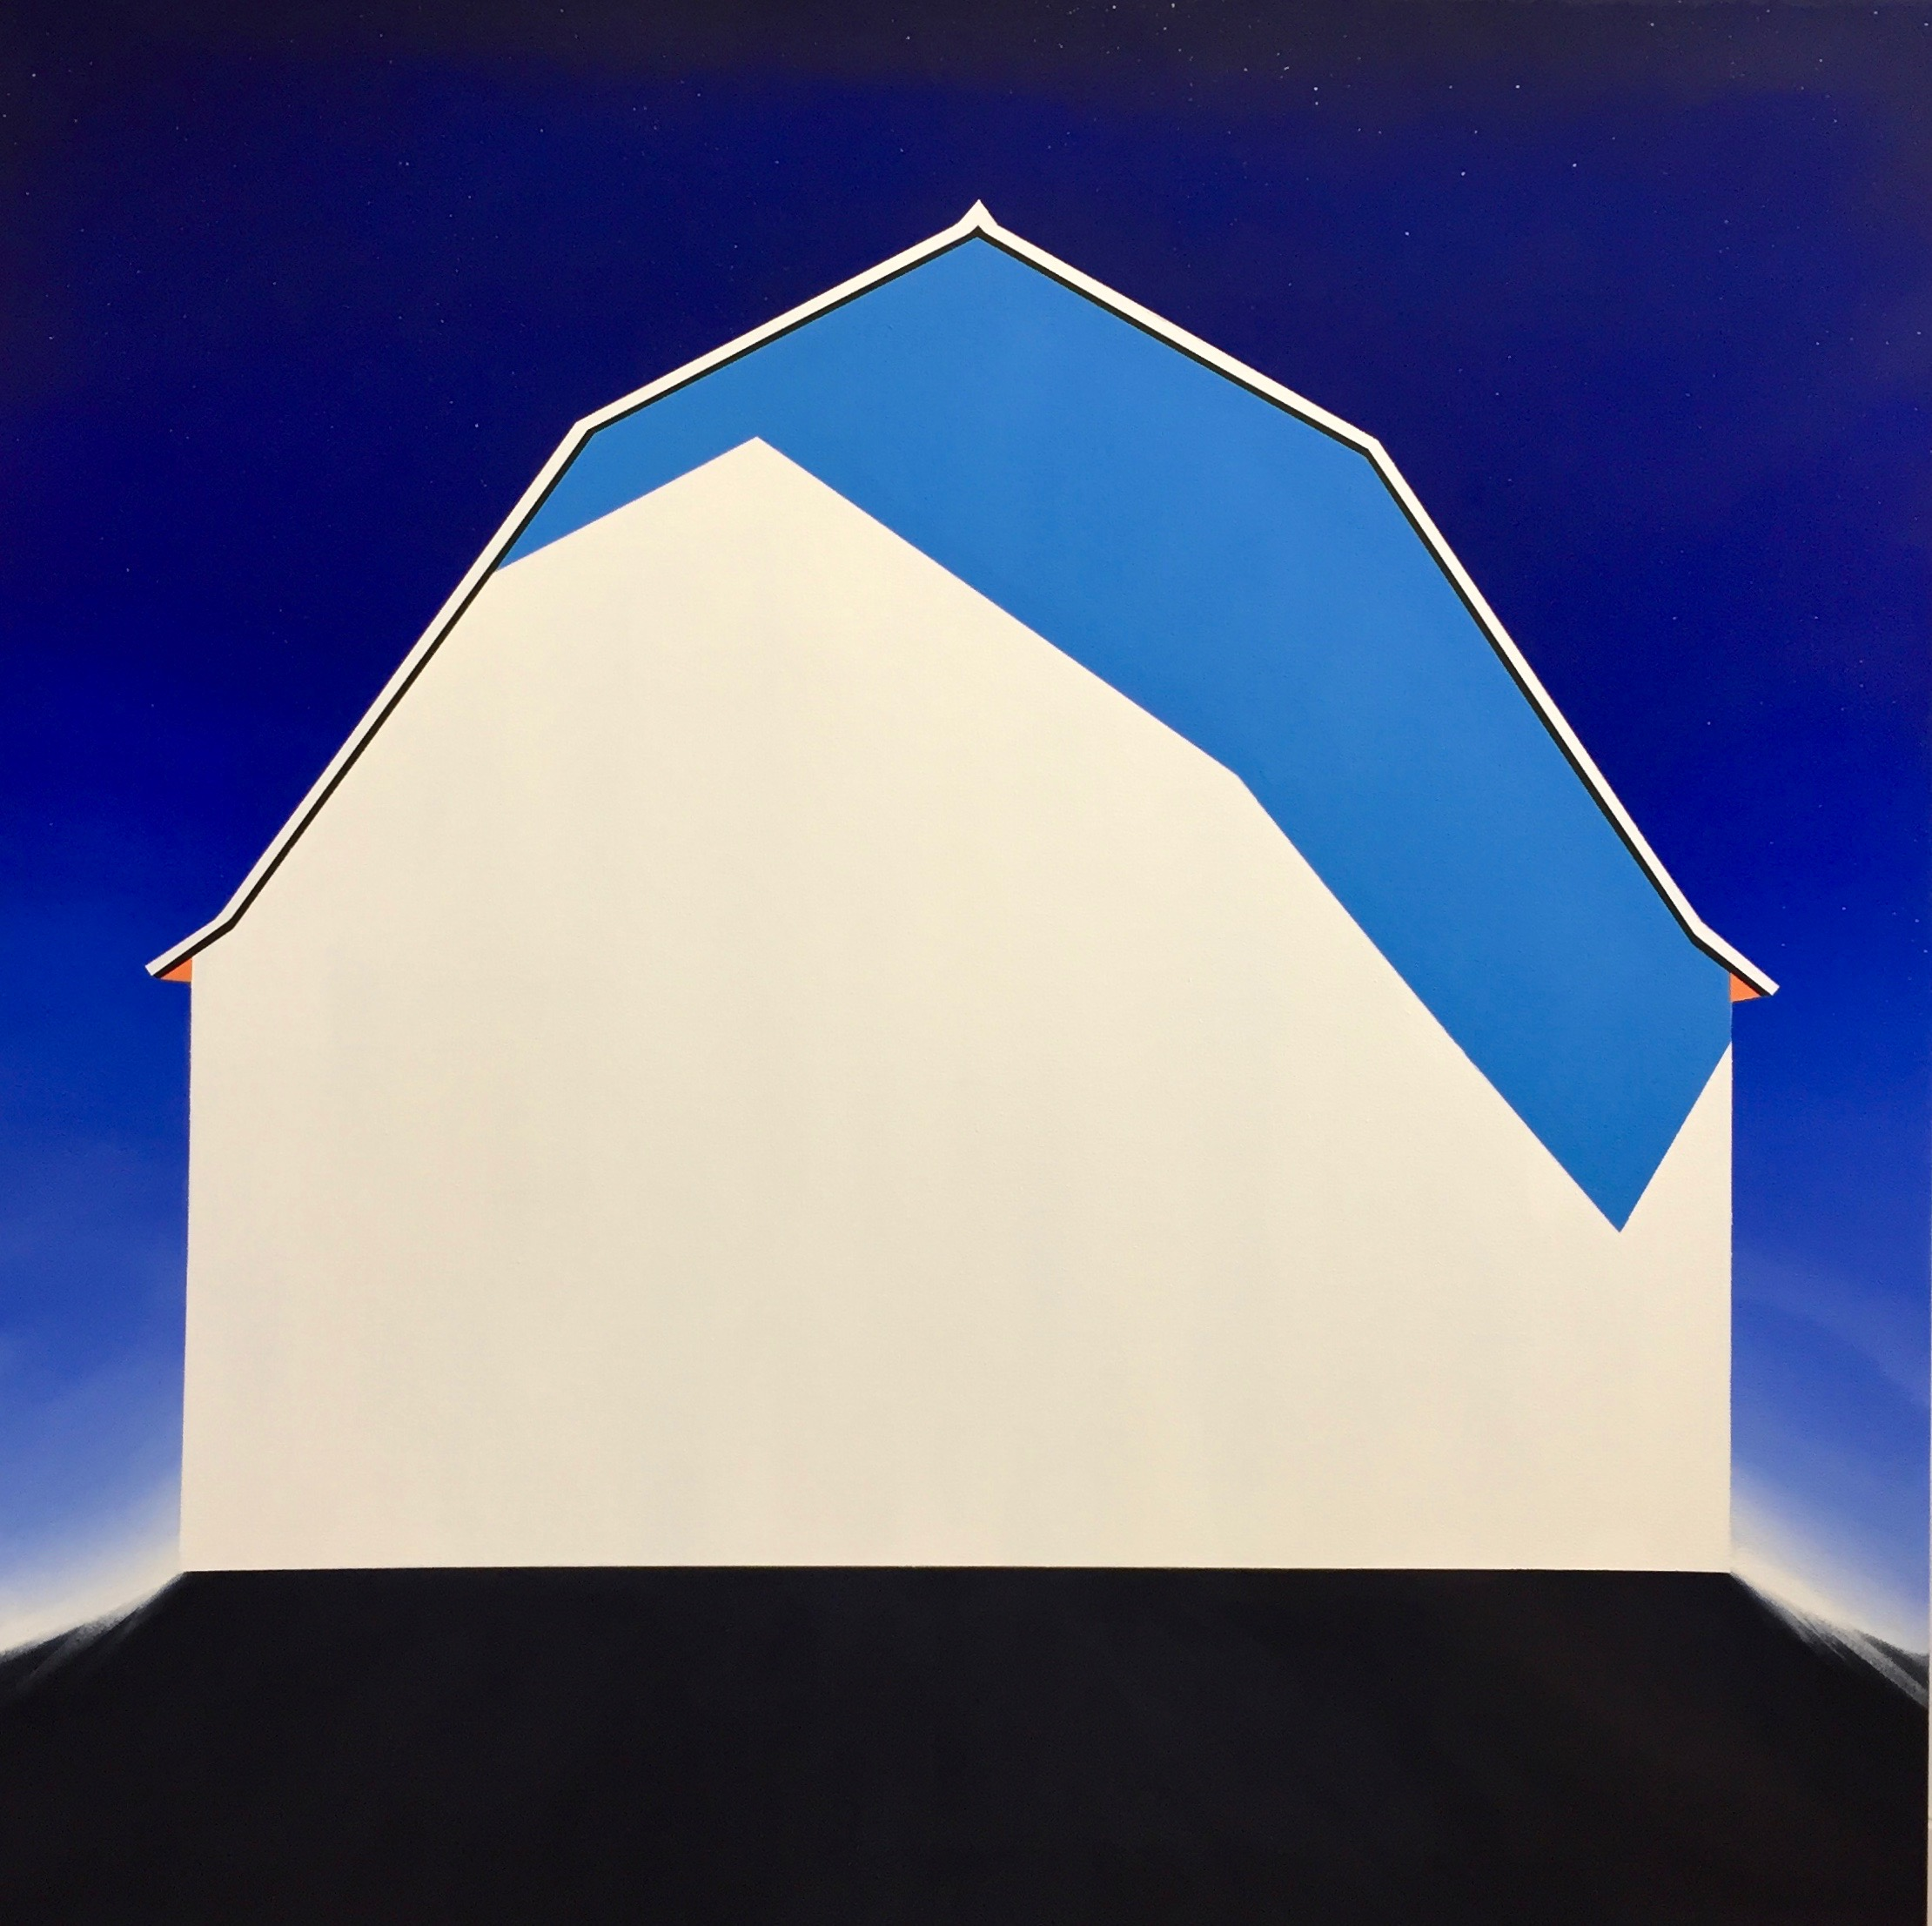 """Angle of Shadow"", 48x48, Oil on Canvas, 2019"